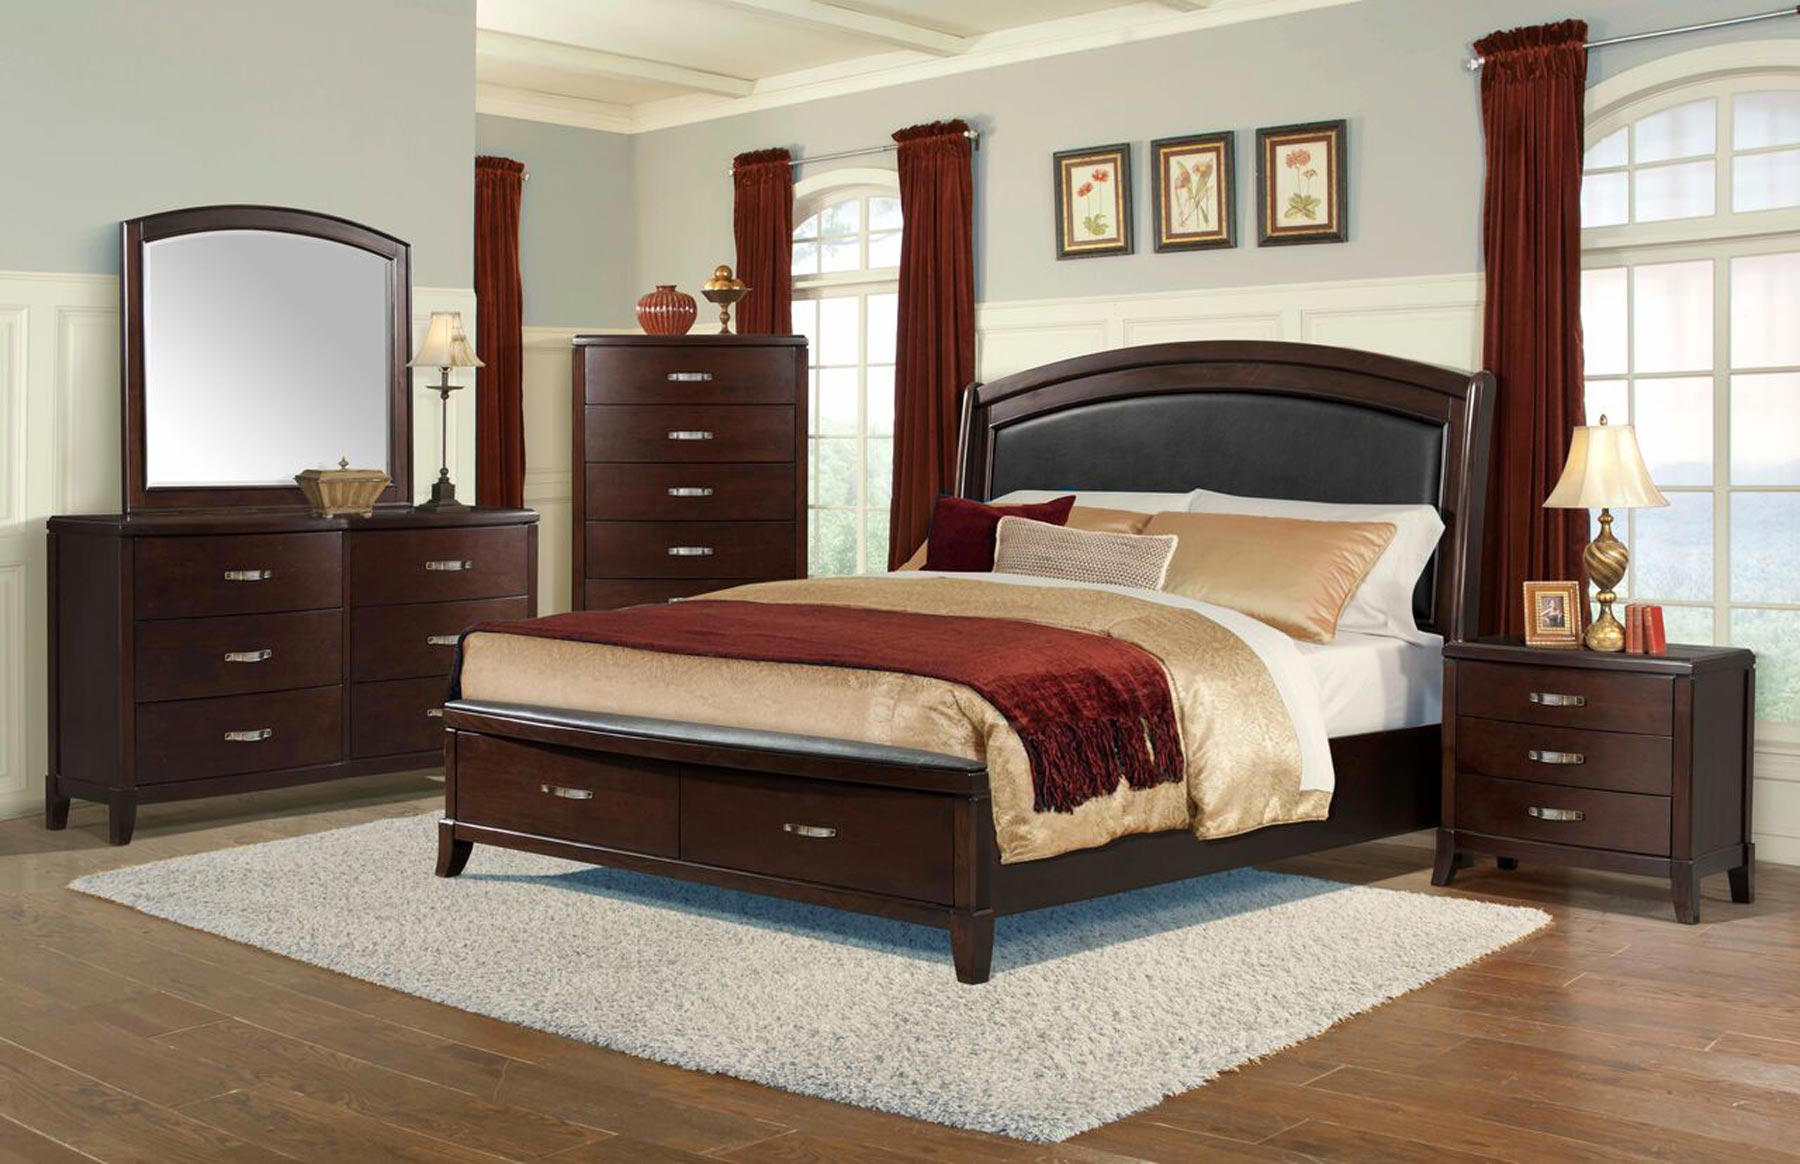 Delaney 6 piece bedroom set gonzalez furniture - How to furnish a small bedroom ...